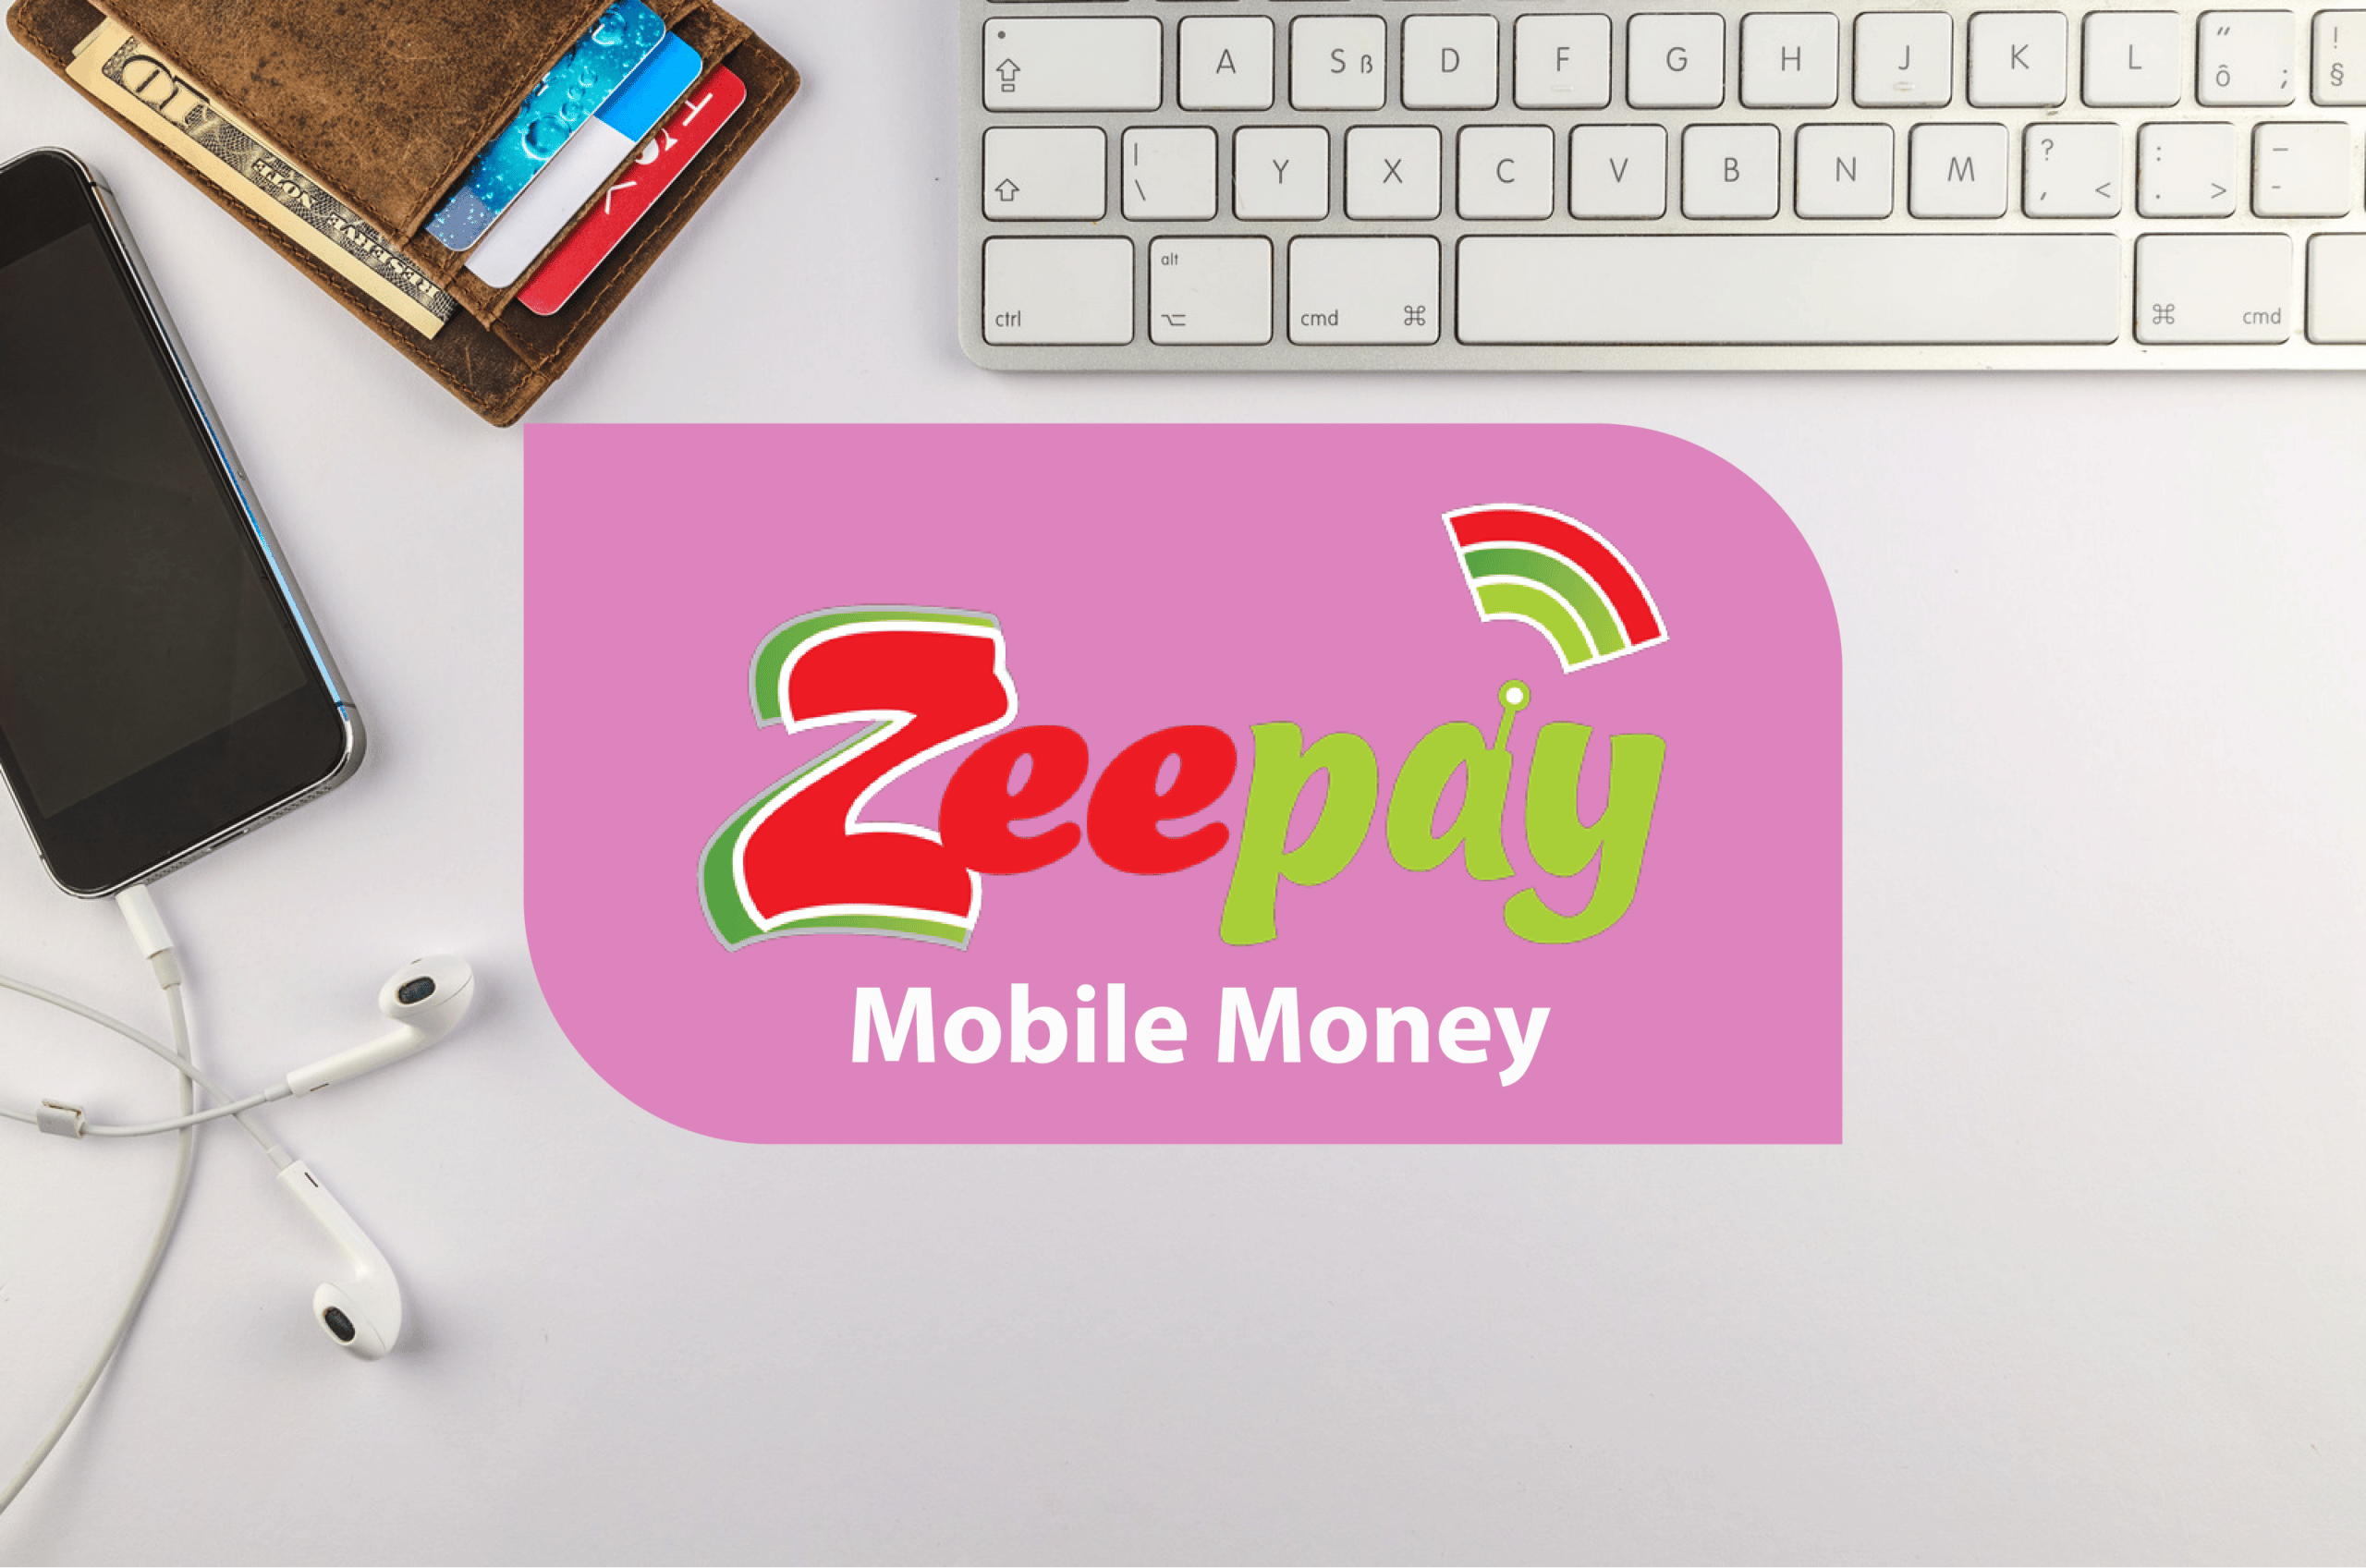 Zeepay mobile money service to be rolled out in Ghana soon